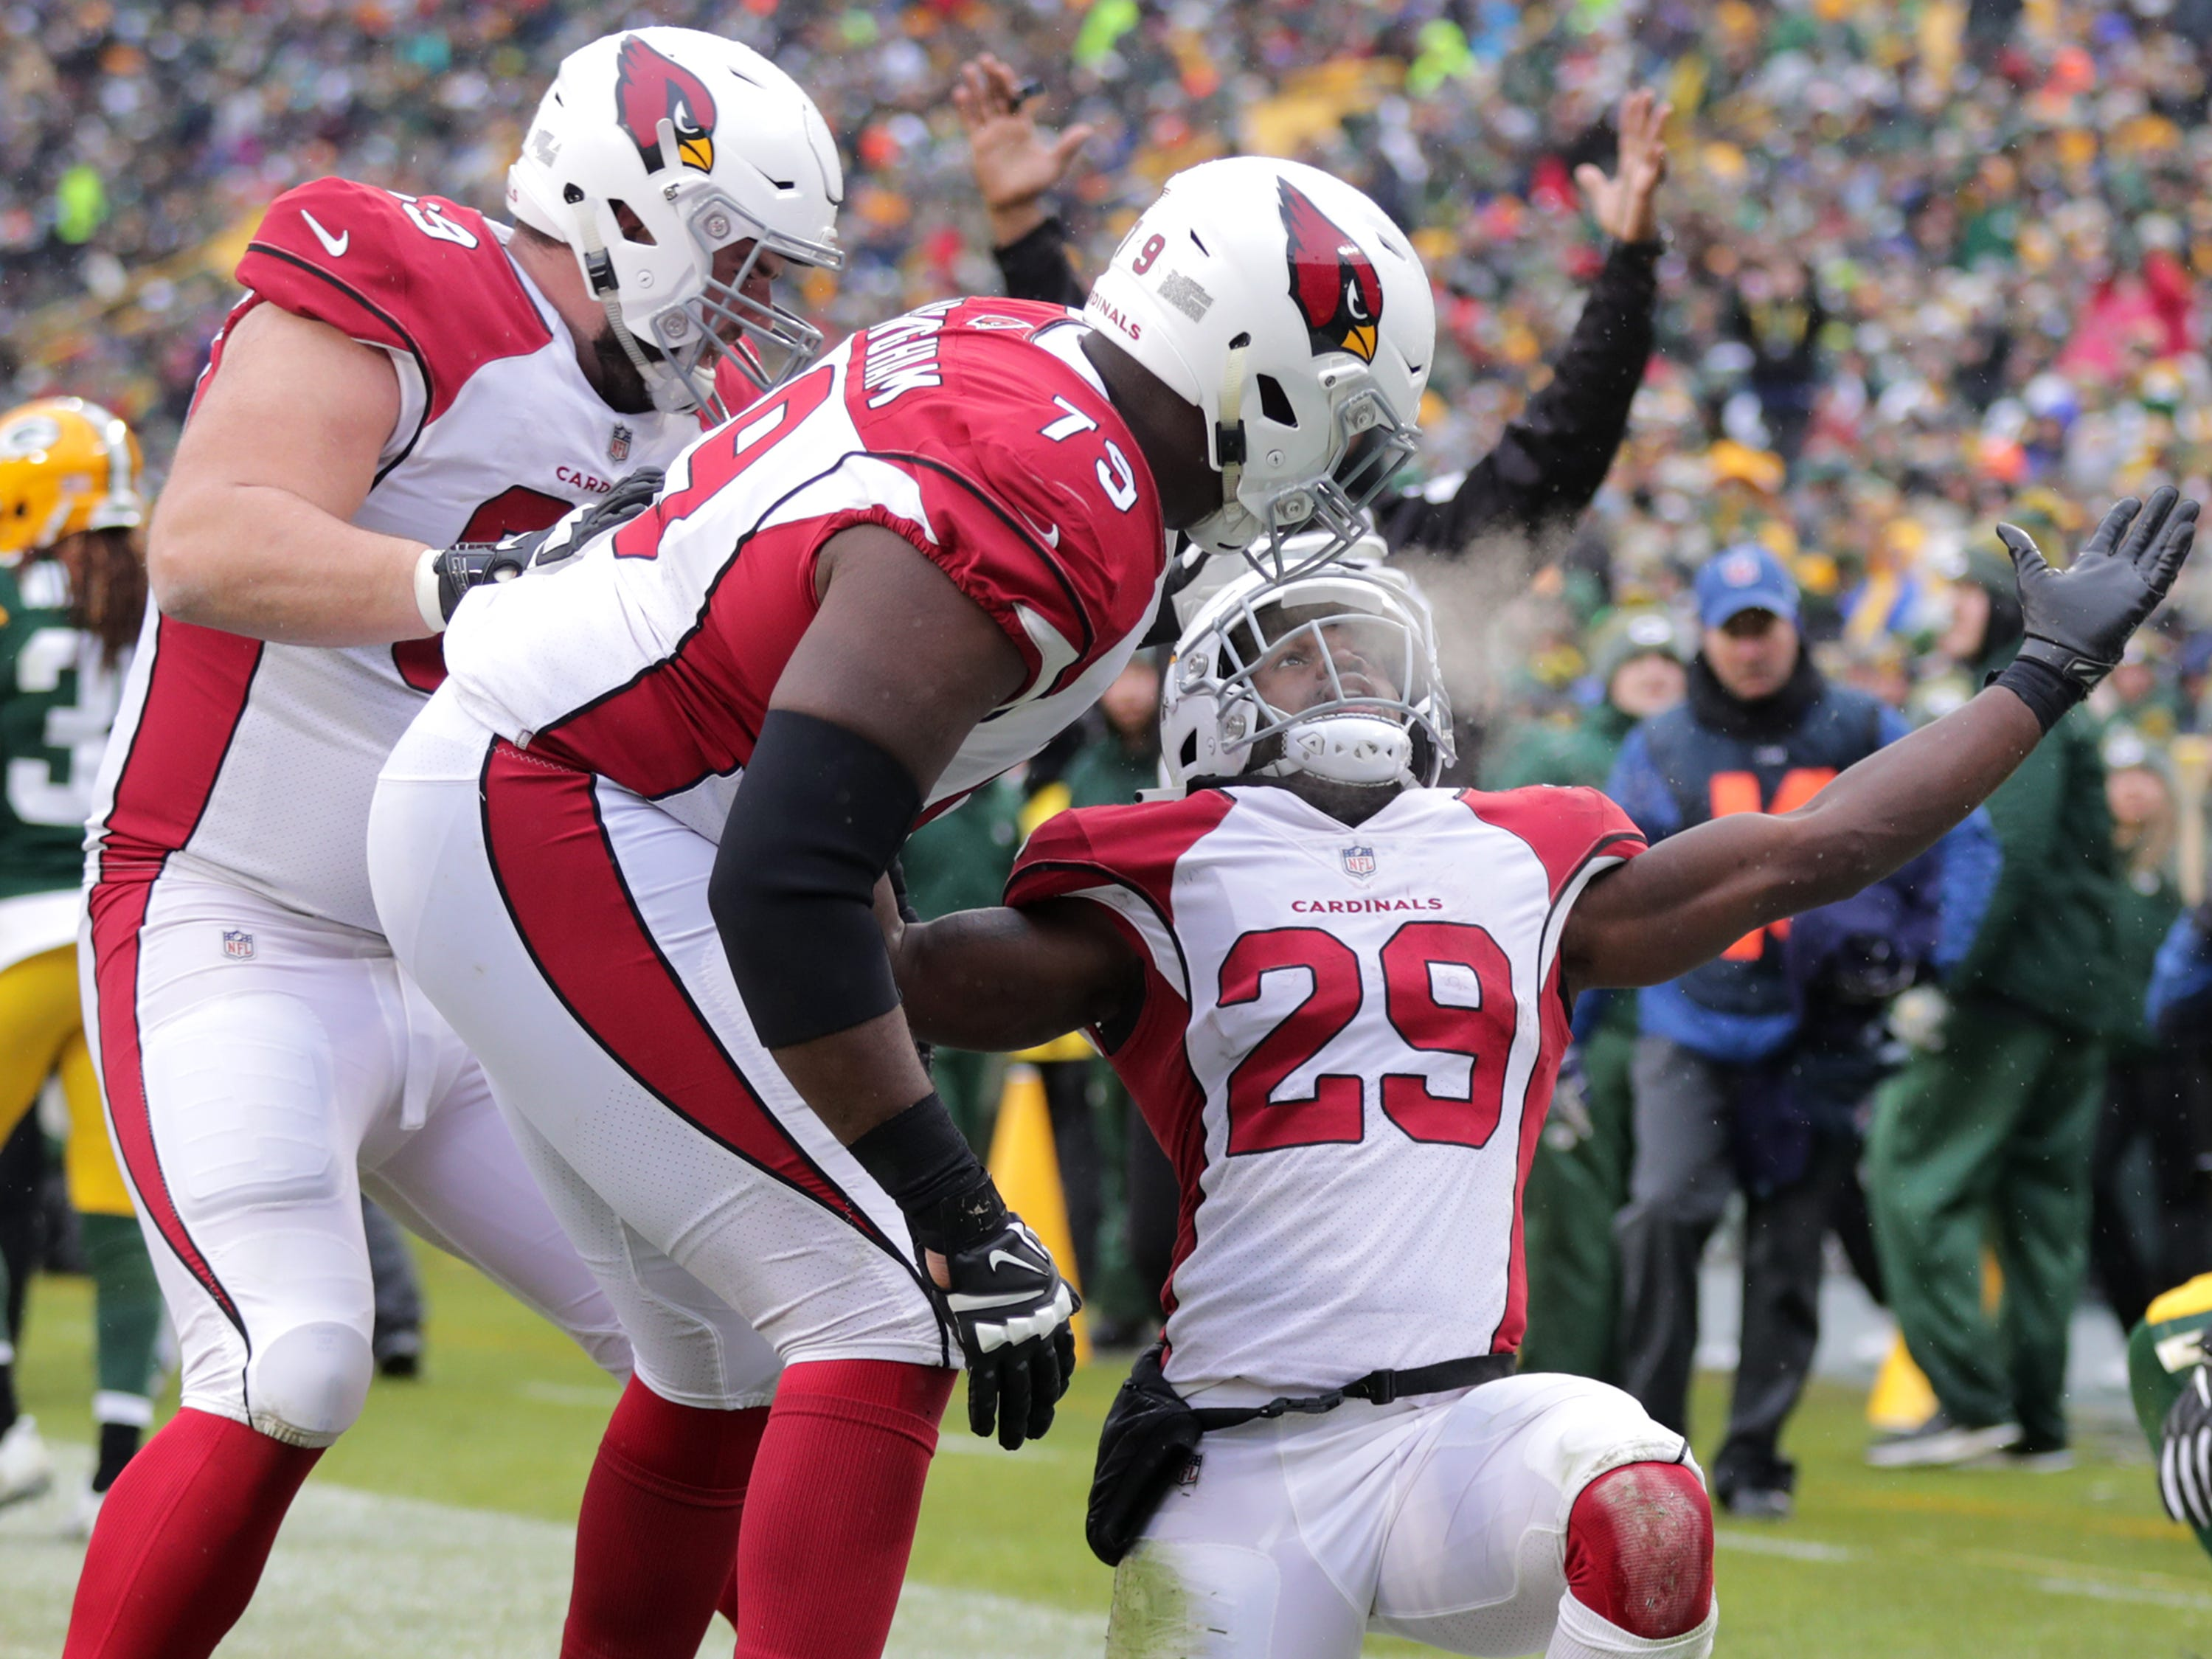 Arizona Cardinals running back Chase Edmonds celebrates a third quarter touchdown against Green Bay Packers inside linebacker Blake Martinez and cornerback Josh Jackson during their football game on Sunday, December 2, 2018, at Lambeau Field in Green Bay, Wis. Wm. Glasheen/USA TODAY NETWORK-Wisconsin.